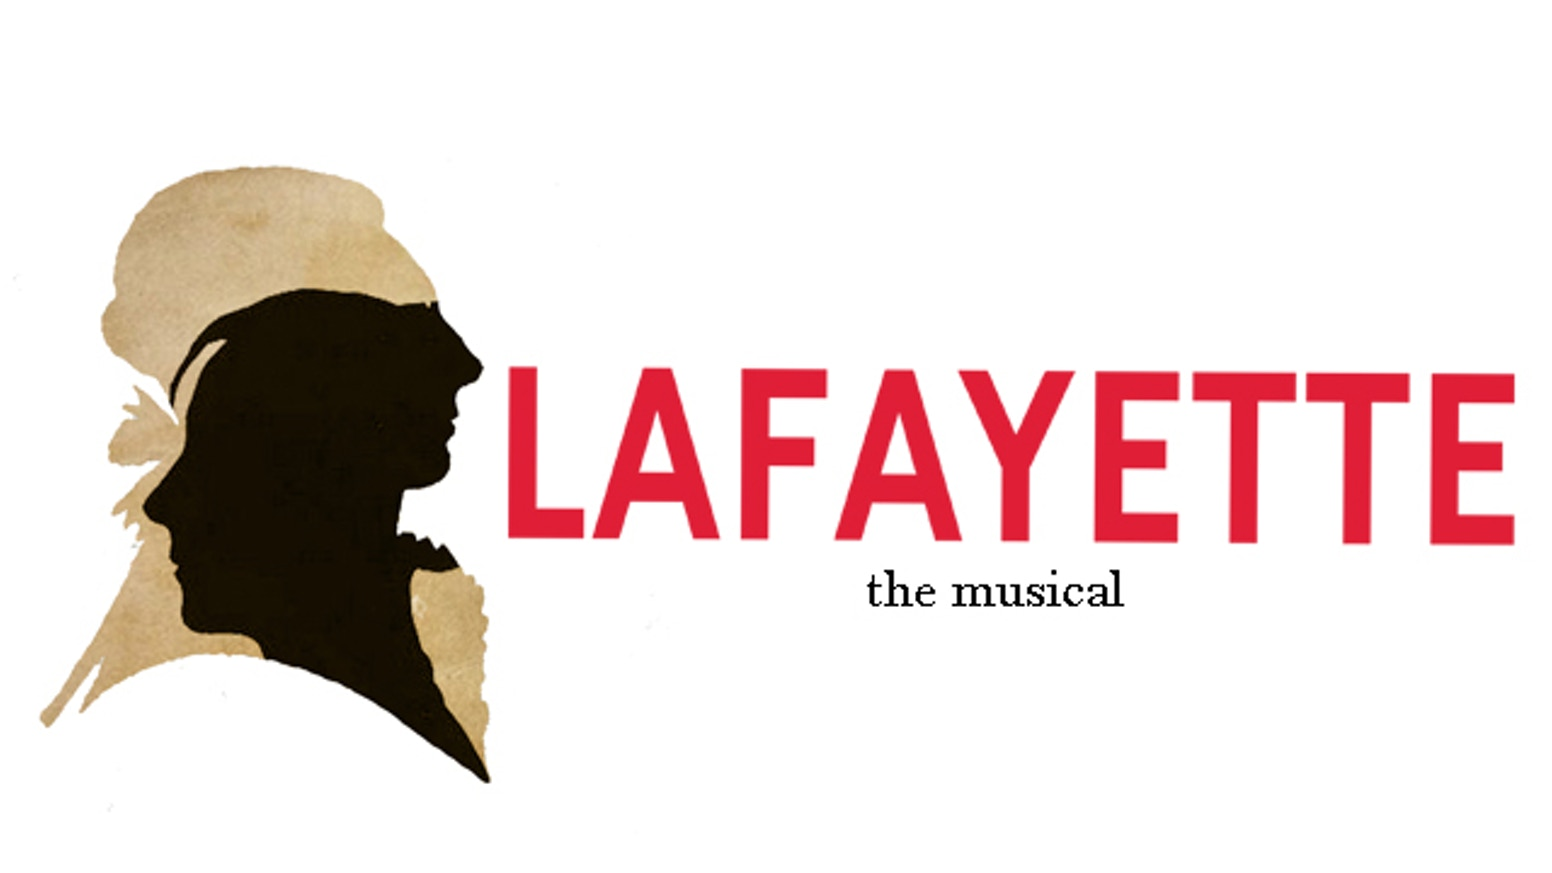 LAFAYETTE: THE MUSICAL follows the rise and fall of the French hero Lafayette amidst the tumult of the French Revolution.